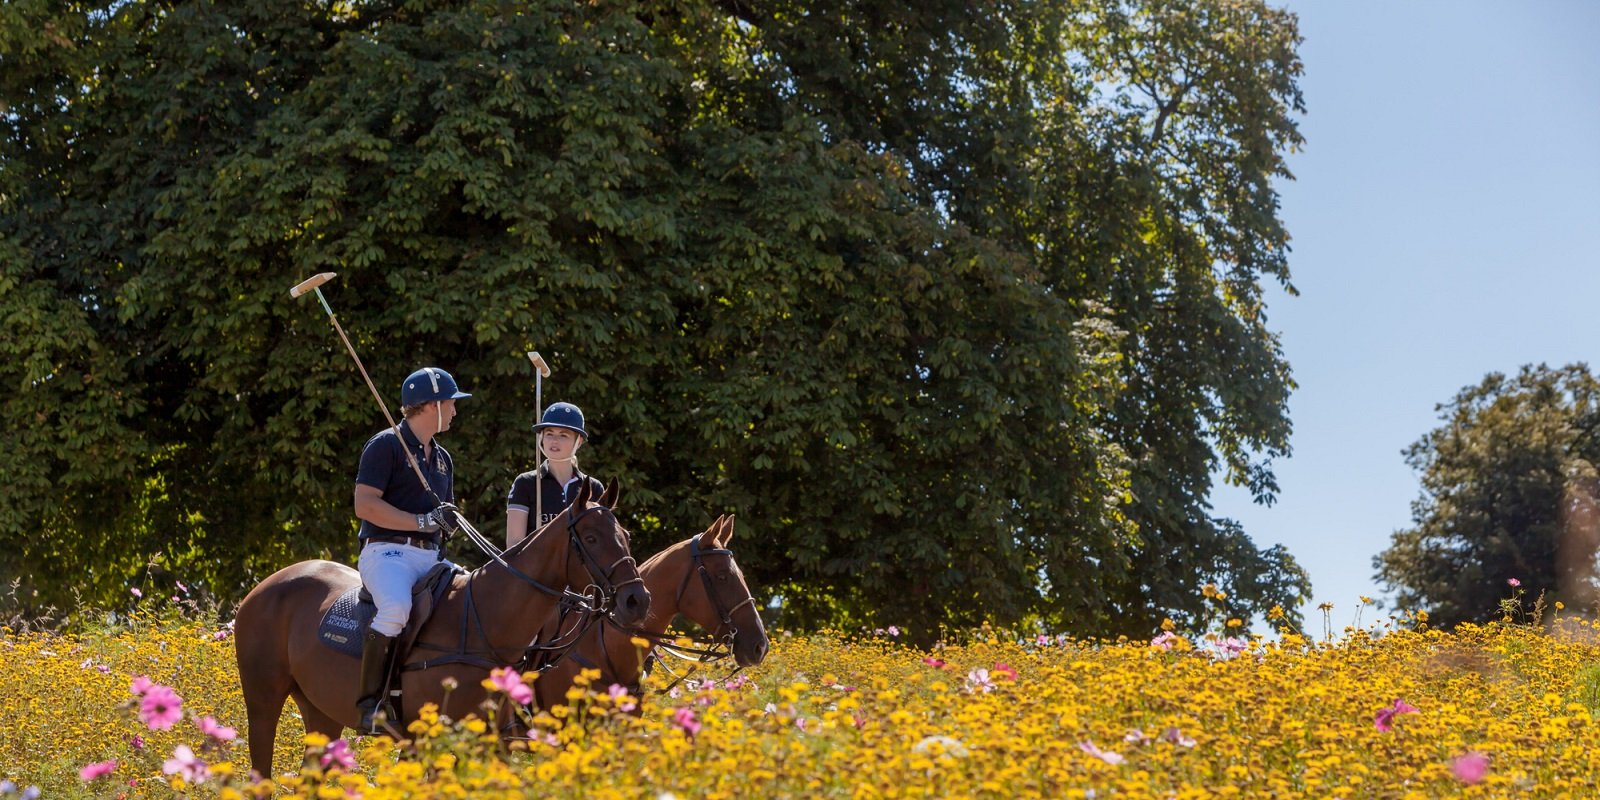 guards-polo-academy-coworth-flower-meadow